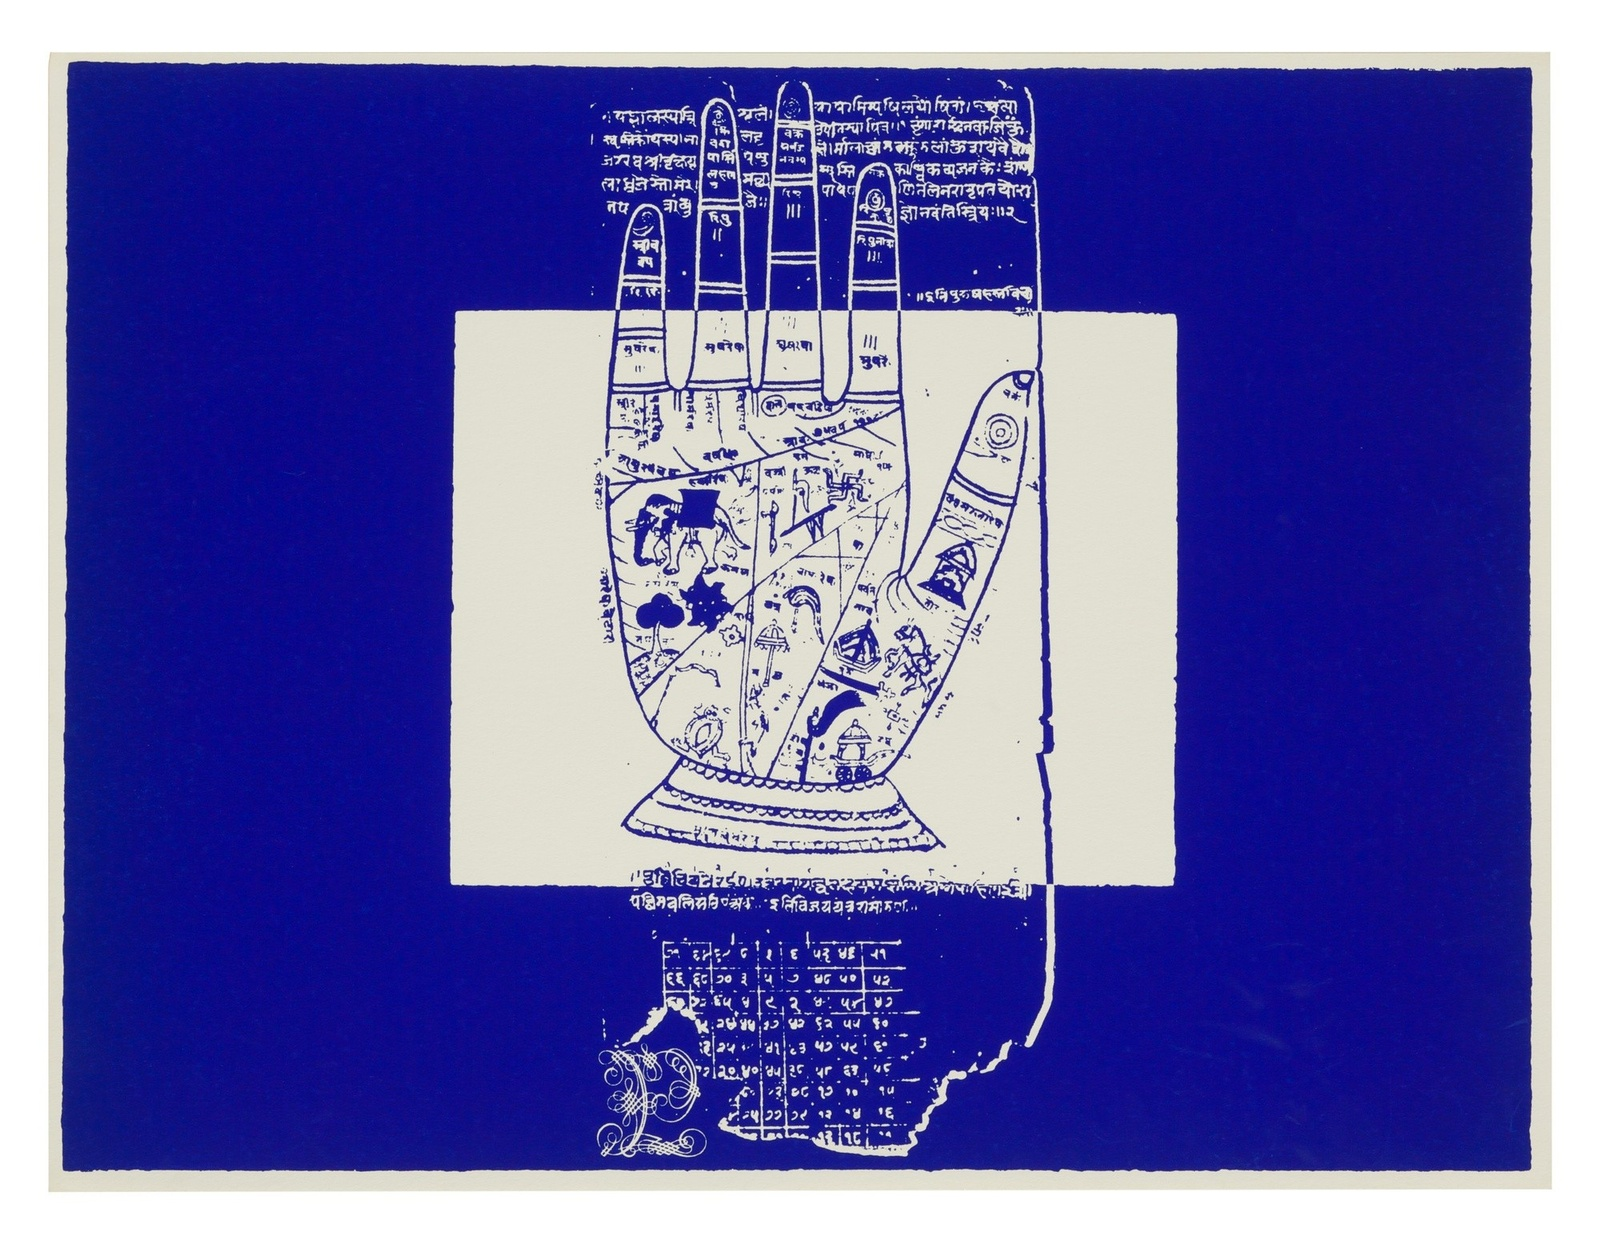 A blue and white screenprint of an open palm divided in sections covered with symbols from Hinduism. Above and below the hand are phrases in Sanskrit.